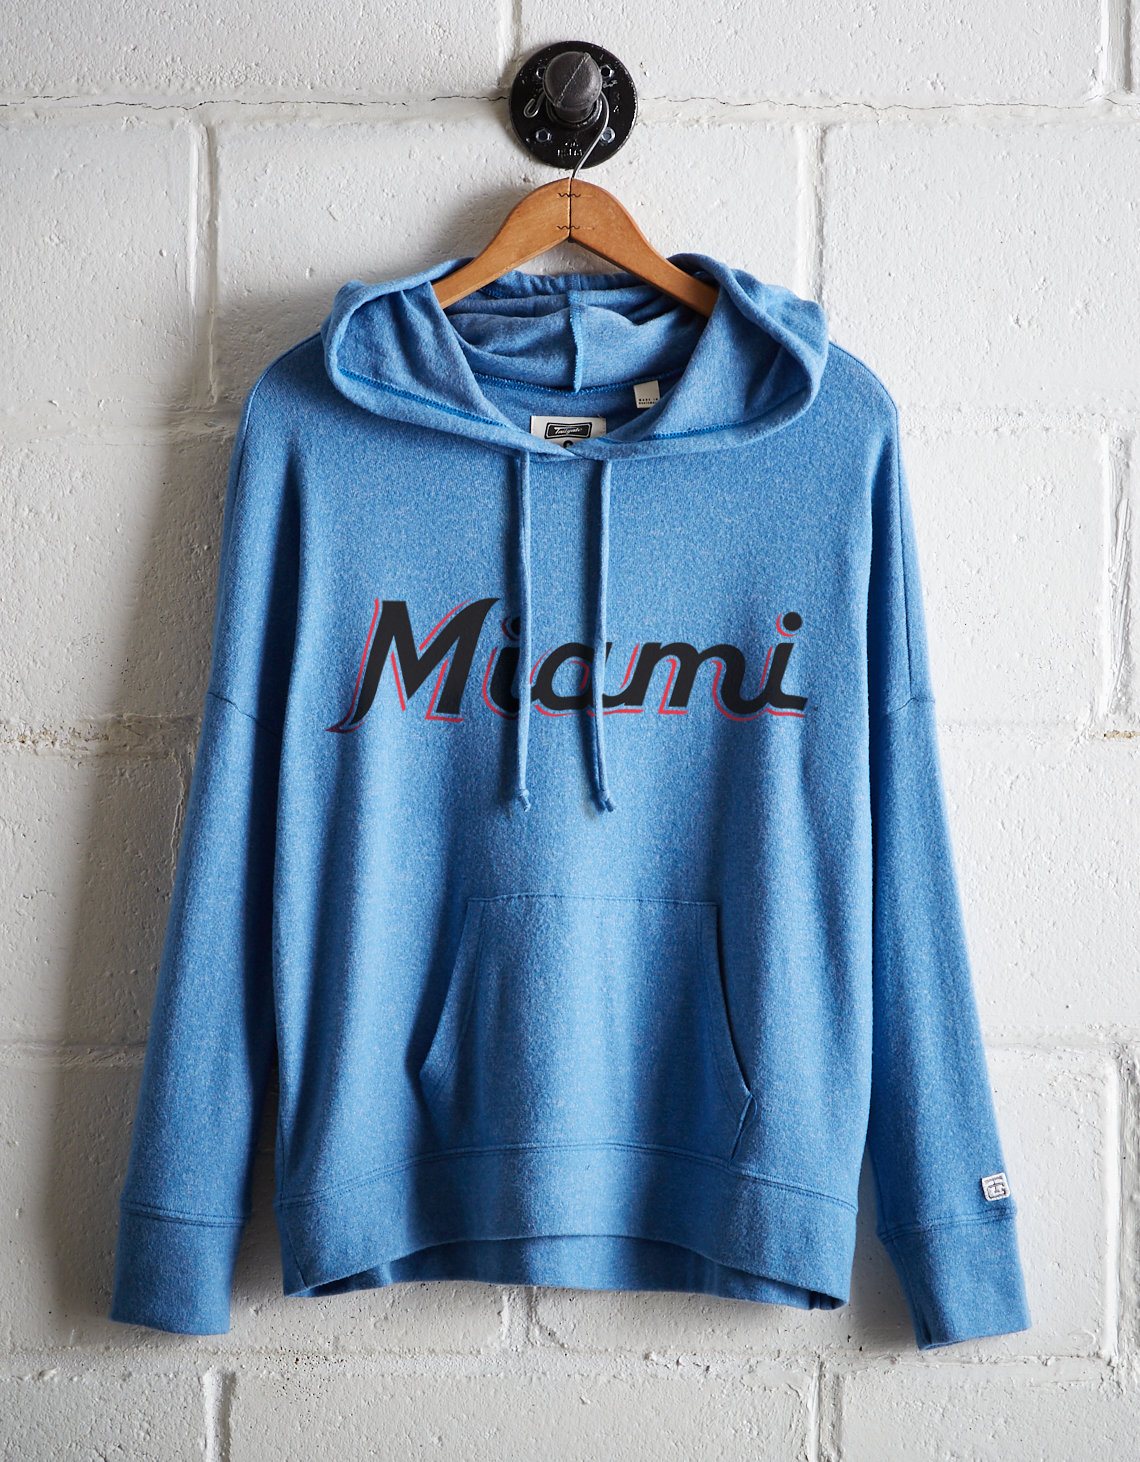 reputable site f72f8 aae2d Tailgate Women's Miami Marlins Plush Hoodie